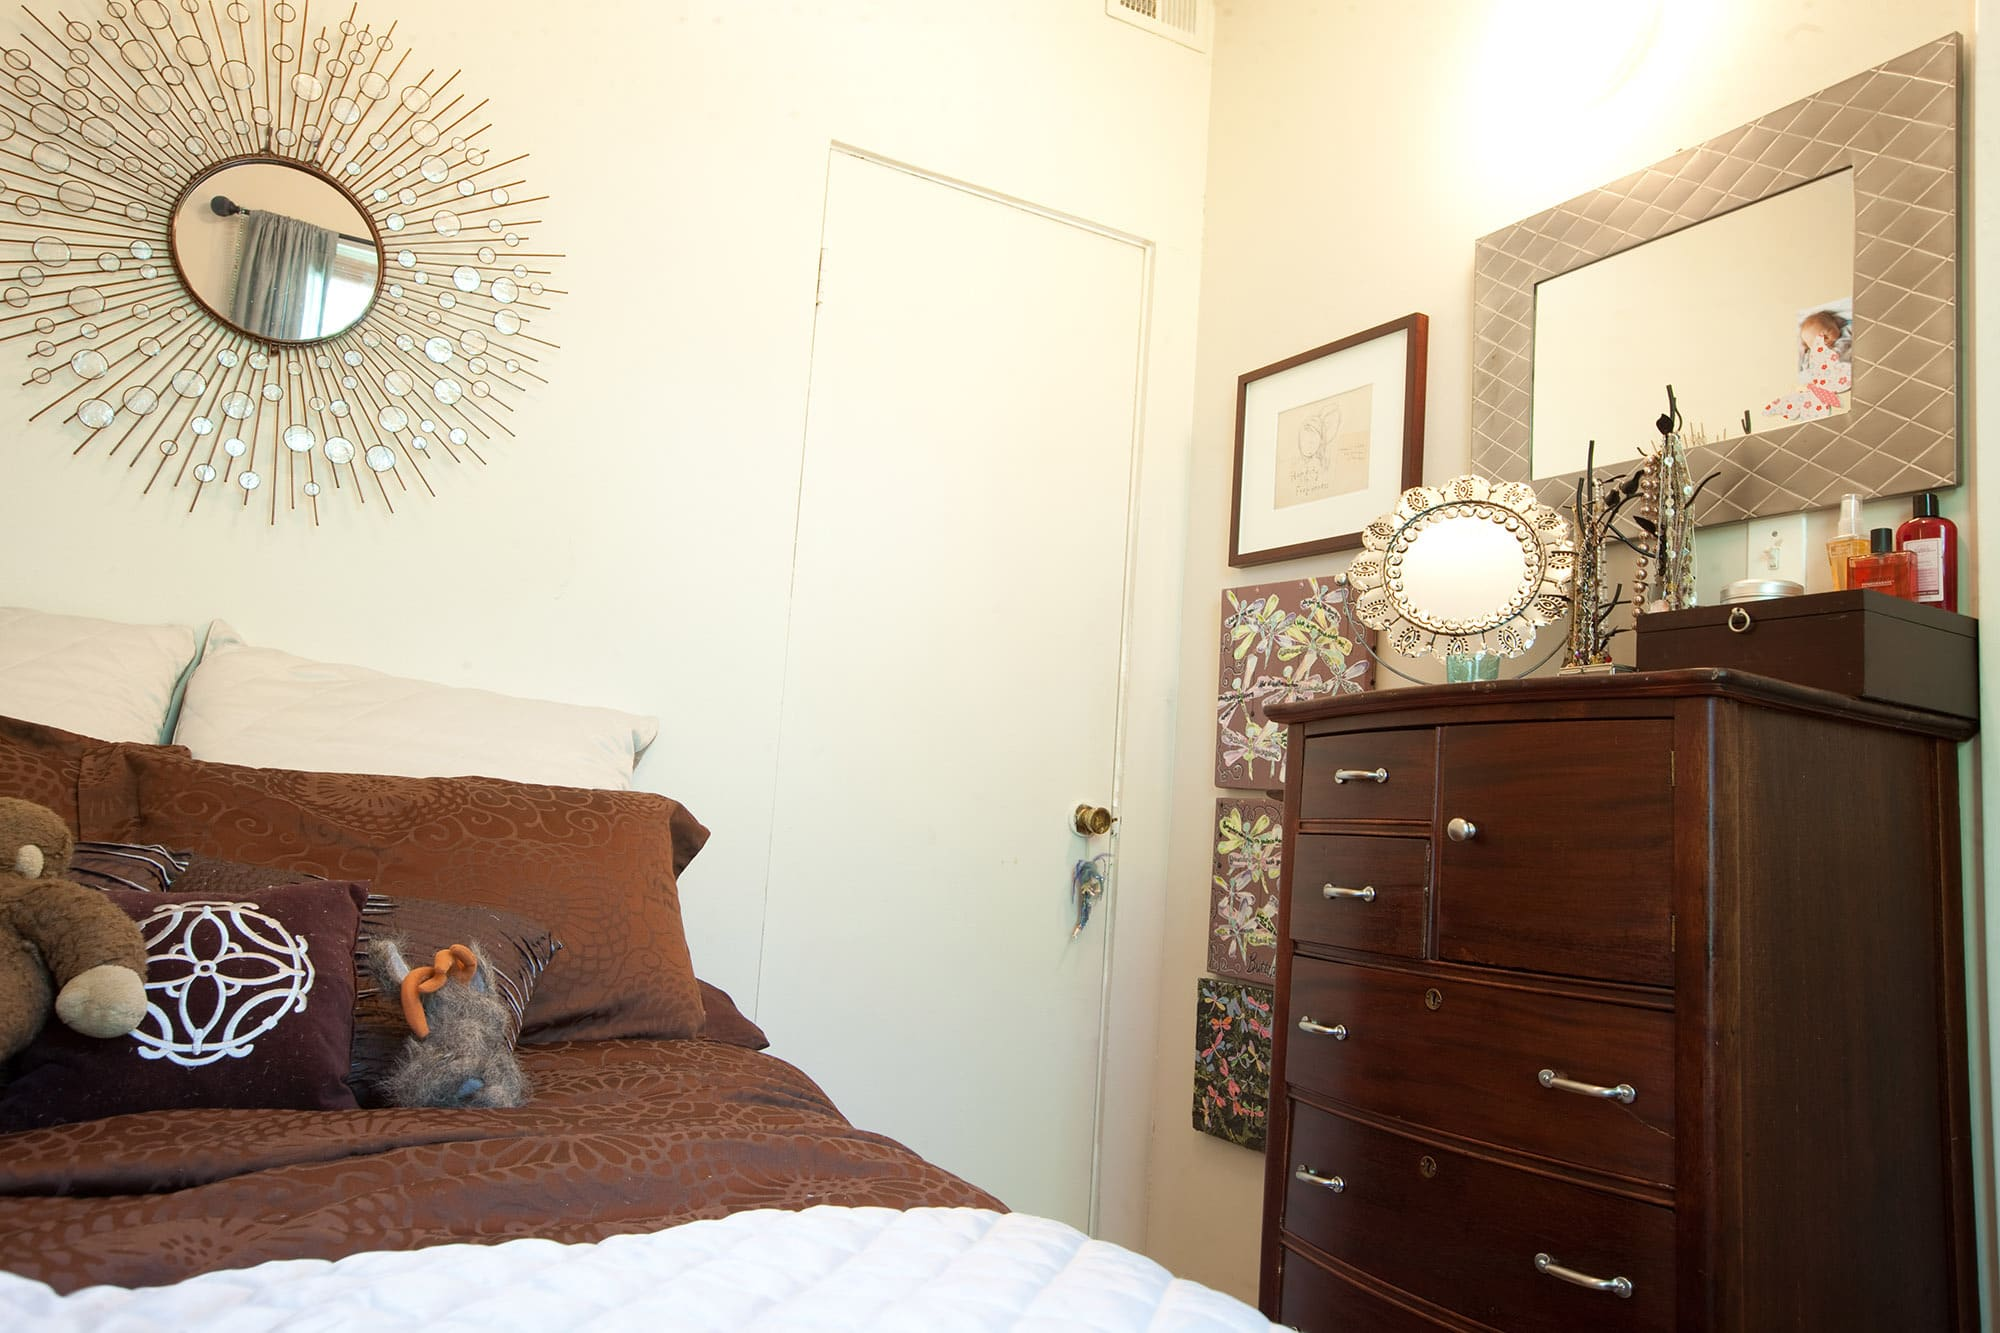 My bedroom. My blue and brown bedroom color scheme. my dresser